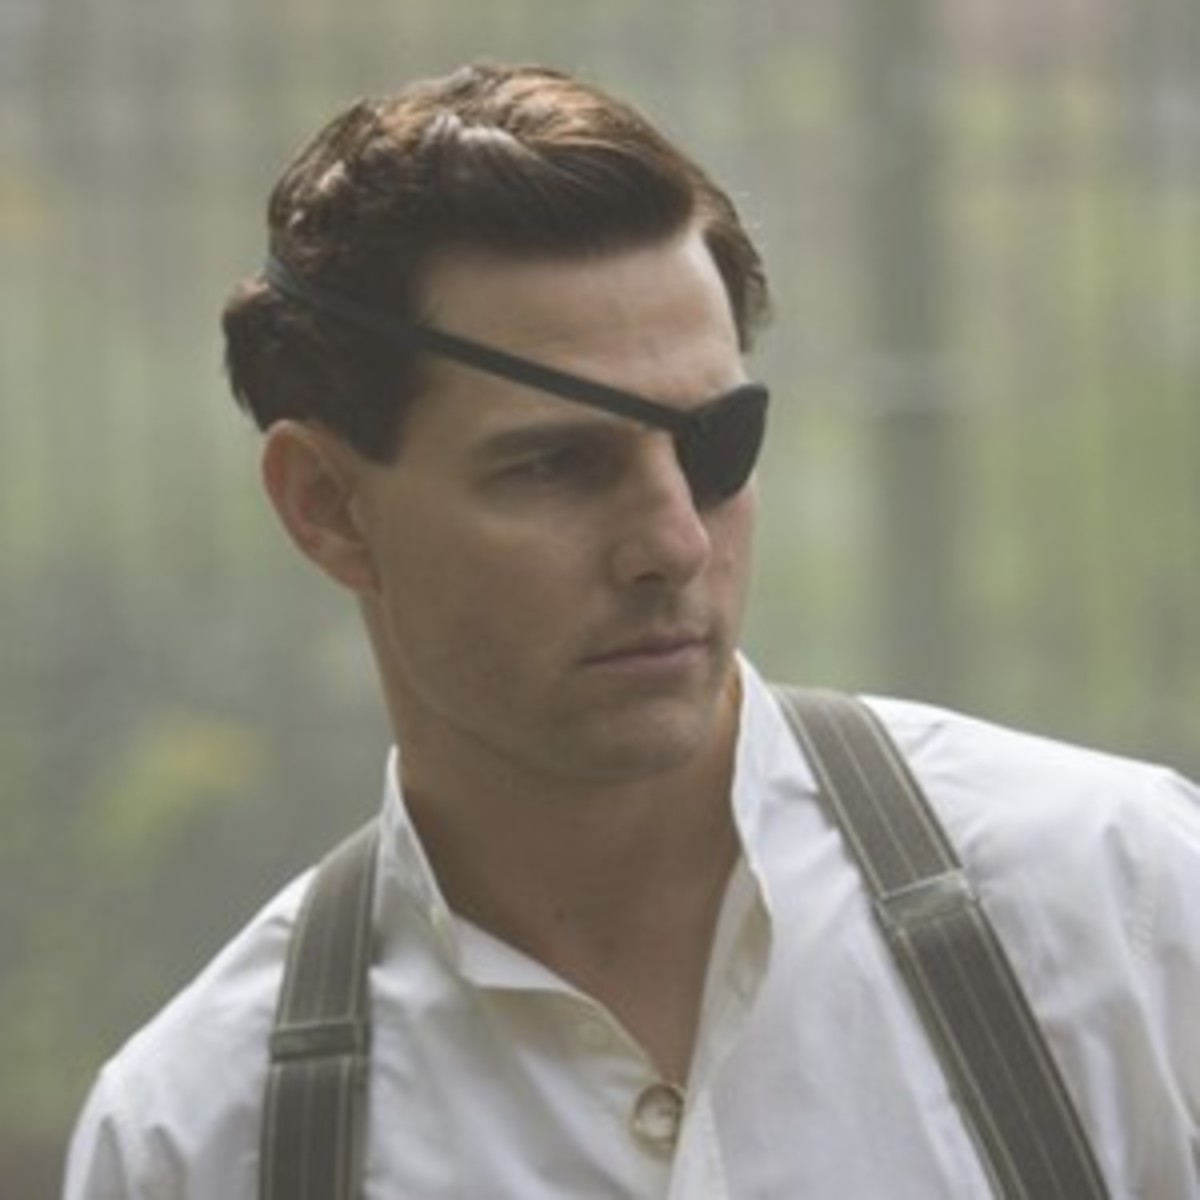 TOM CRUISE STARS IN VALKYRIE THE MOVIE